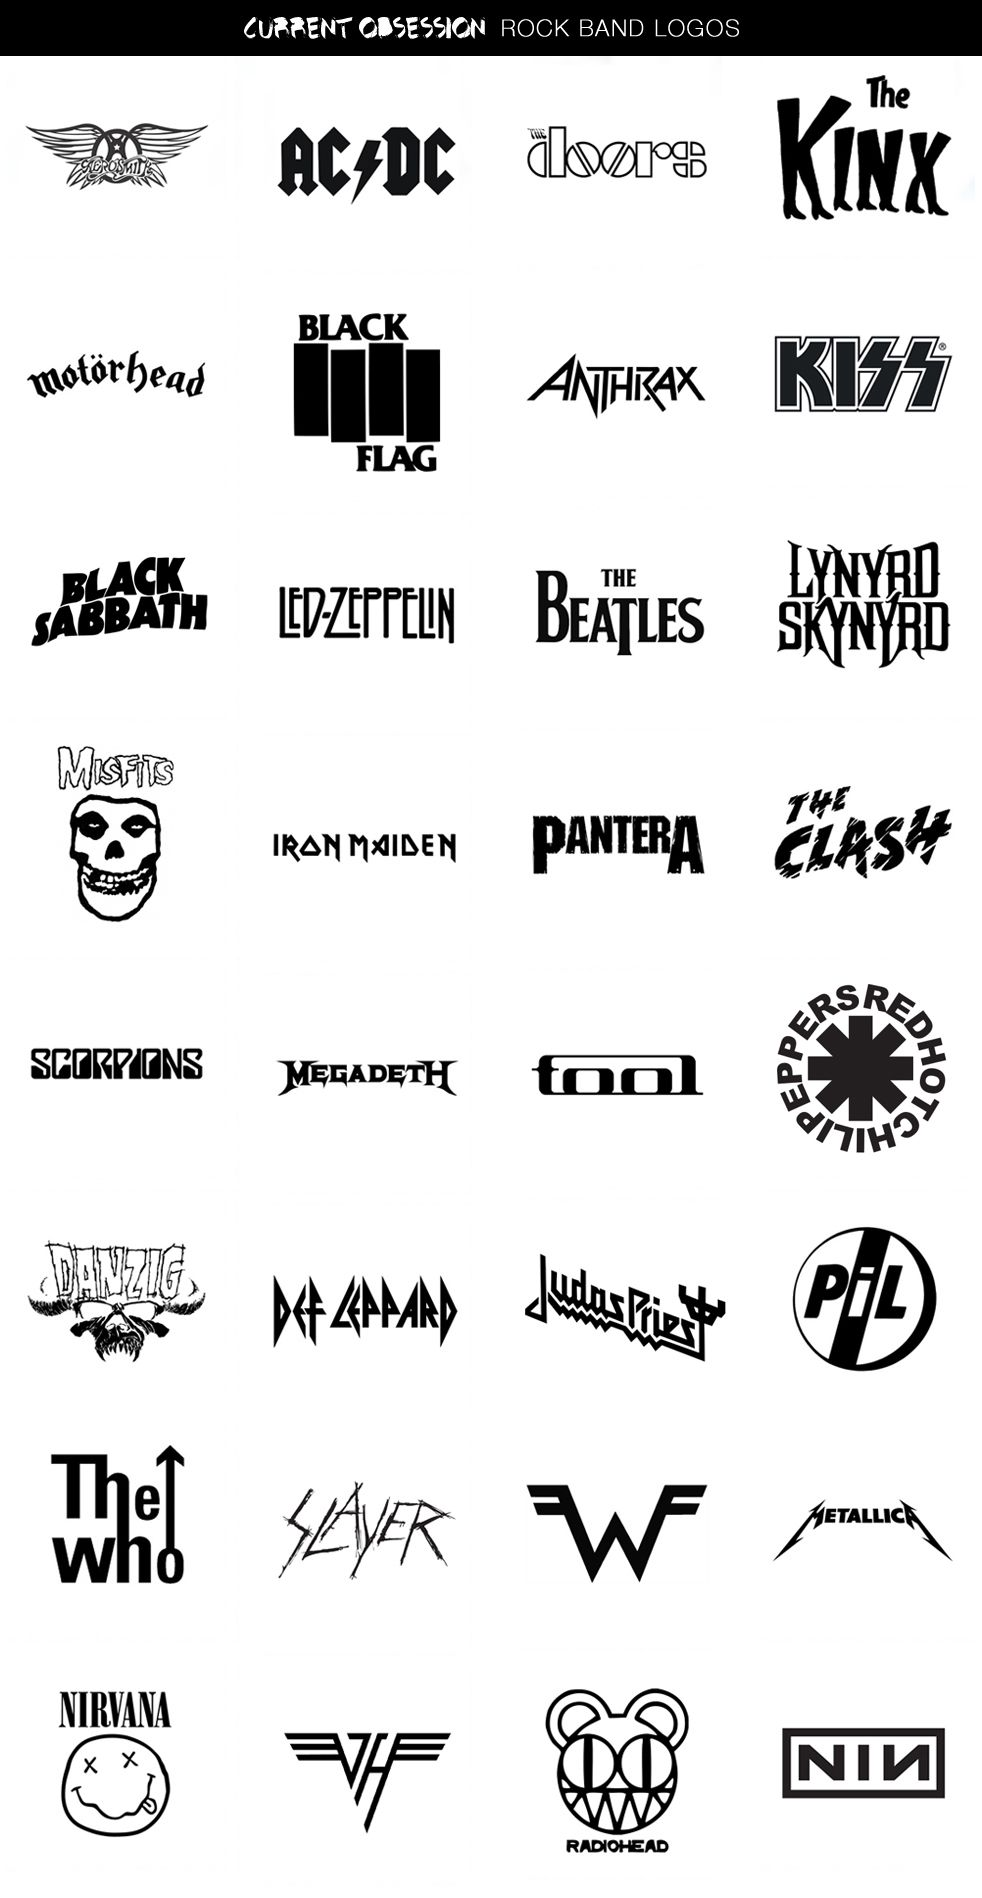 Current Obsession Rock Band Logos Rock Band Artisti